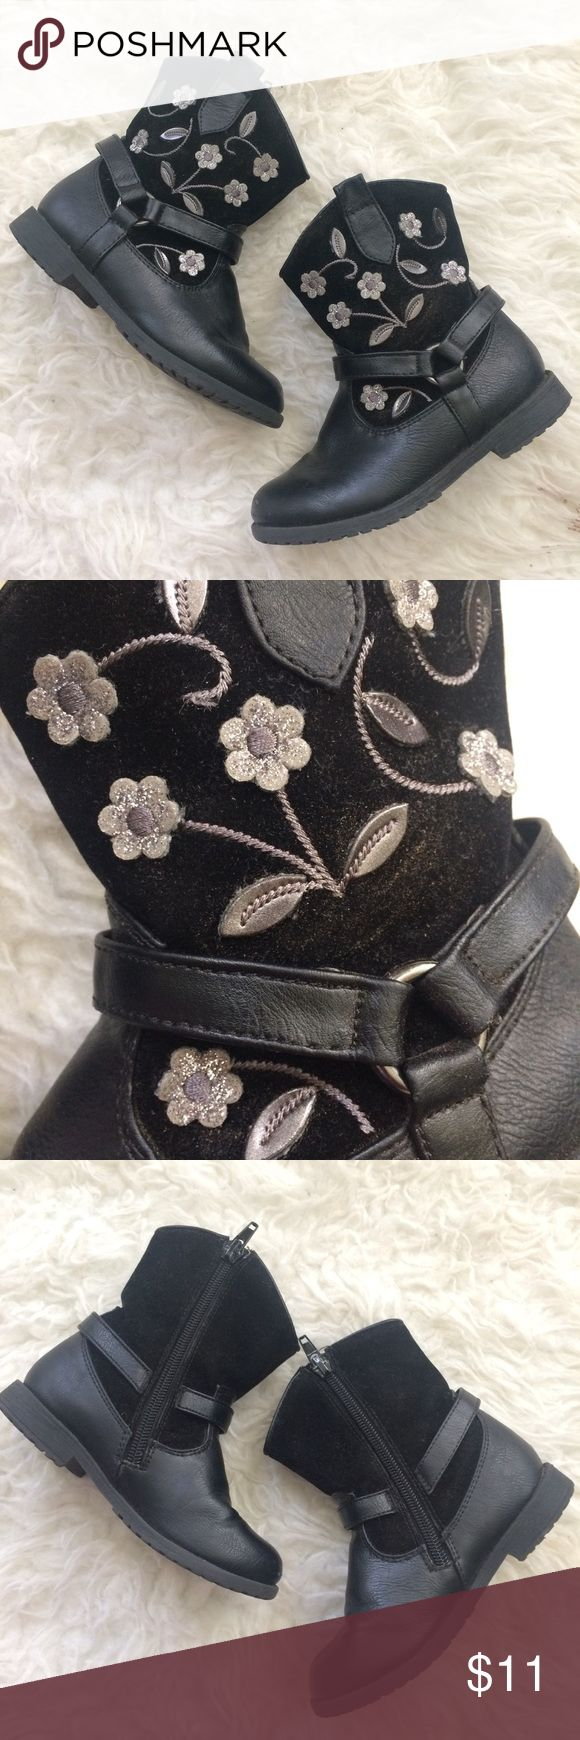 Rachel shoes Madison cowboy boots girls 9 Very good condition boots from Rachel shoes girls size 9. Silver floral appliqués embroidery and faux suede velvet and leather. Minor creases on front, otherwise minimal wear. Rachel Shoes Boots